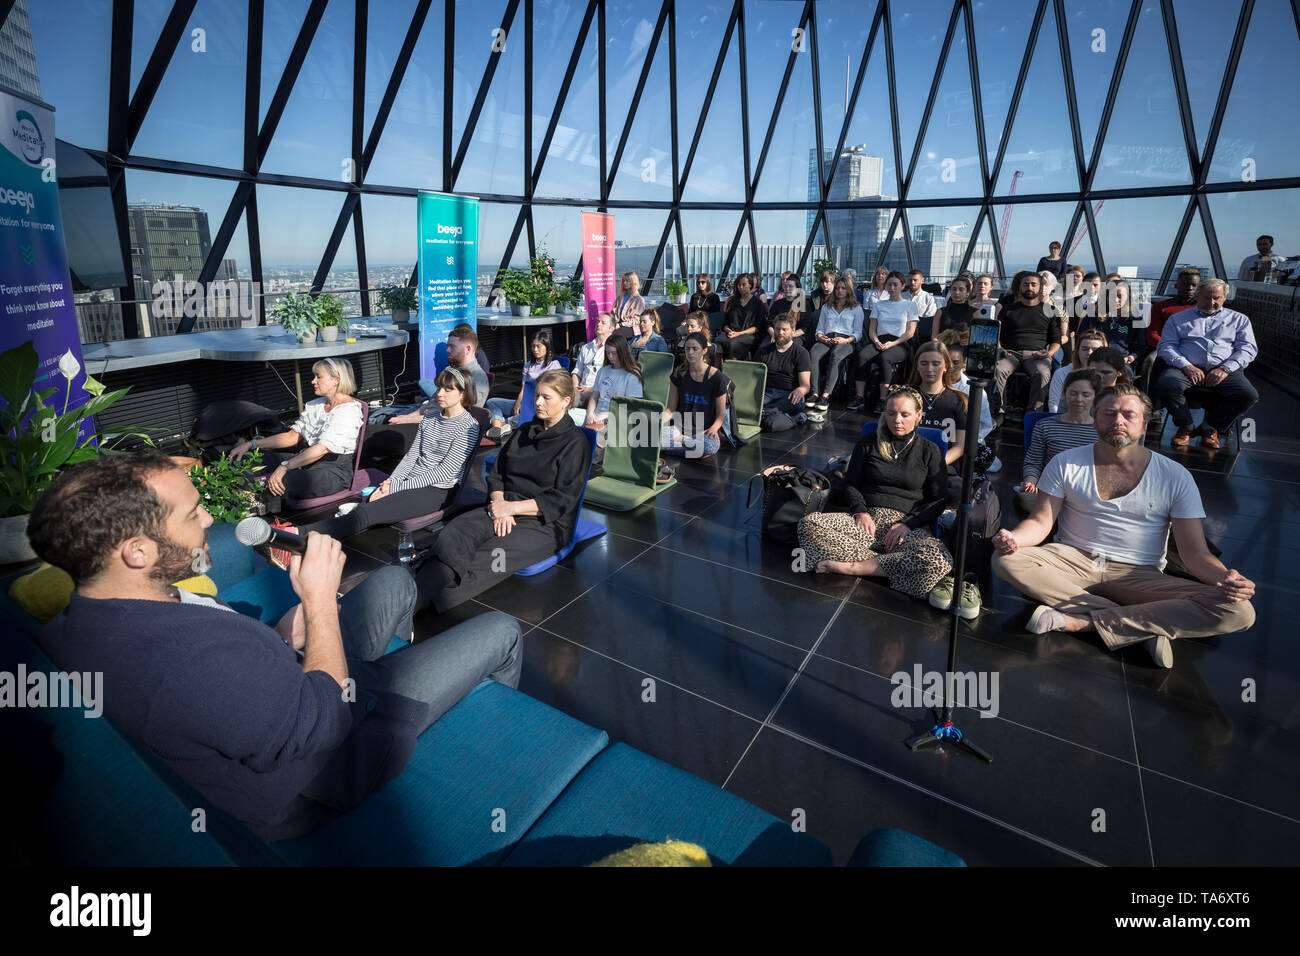 World Meditation Day performed at the top of The Gherkin building led by meditation guru Will Williams(pictured). London, UK. Stock Photo